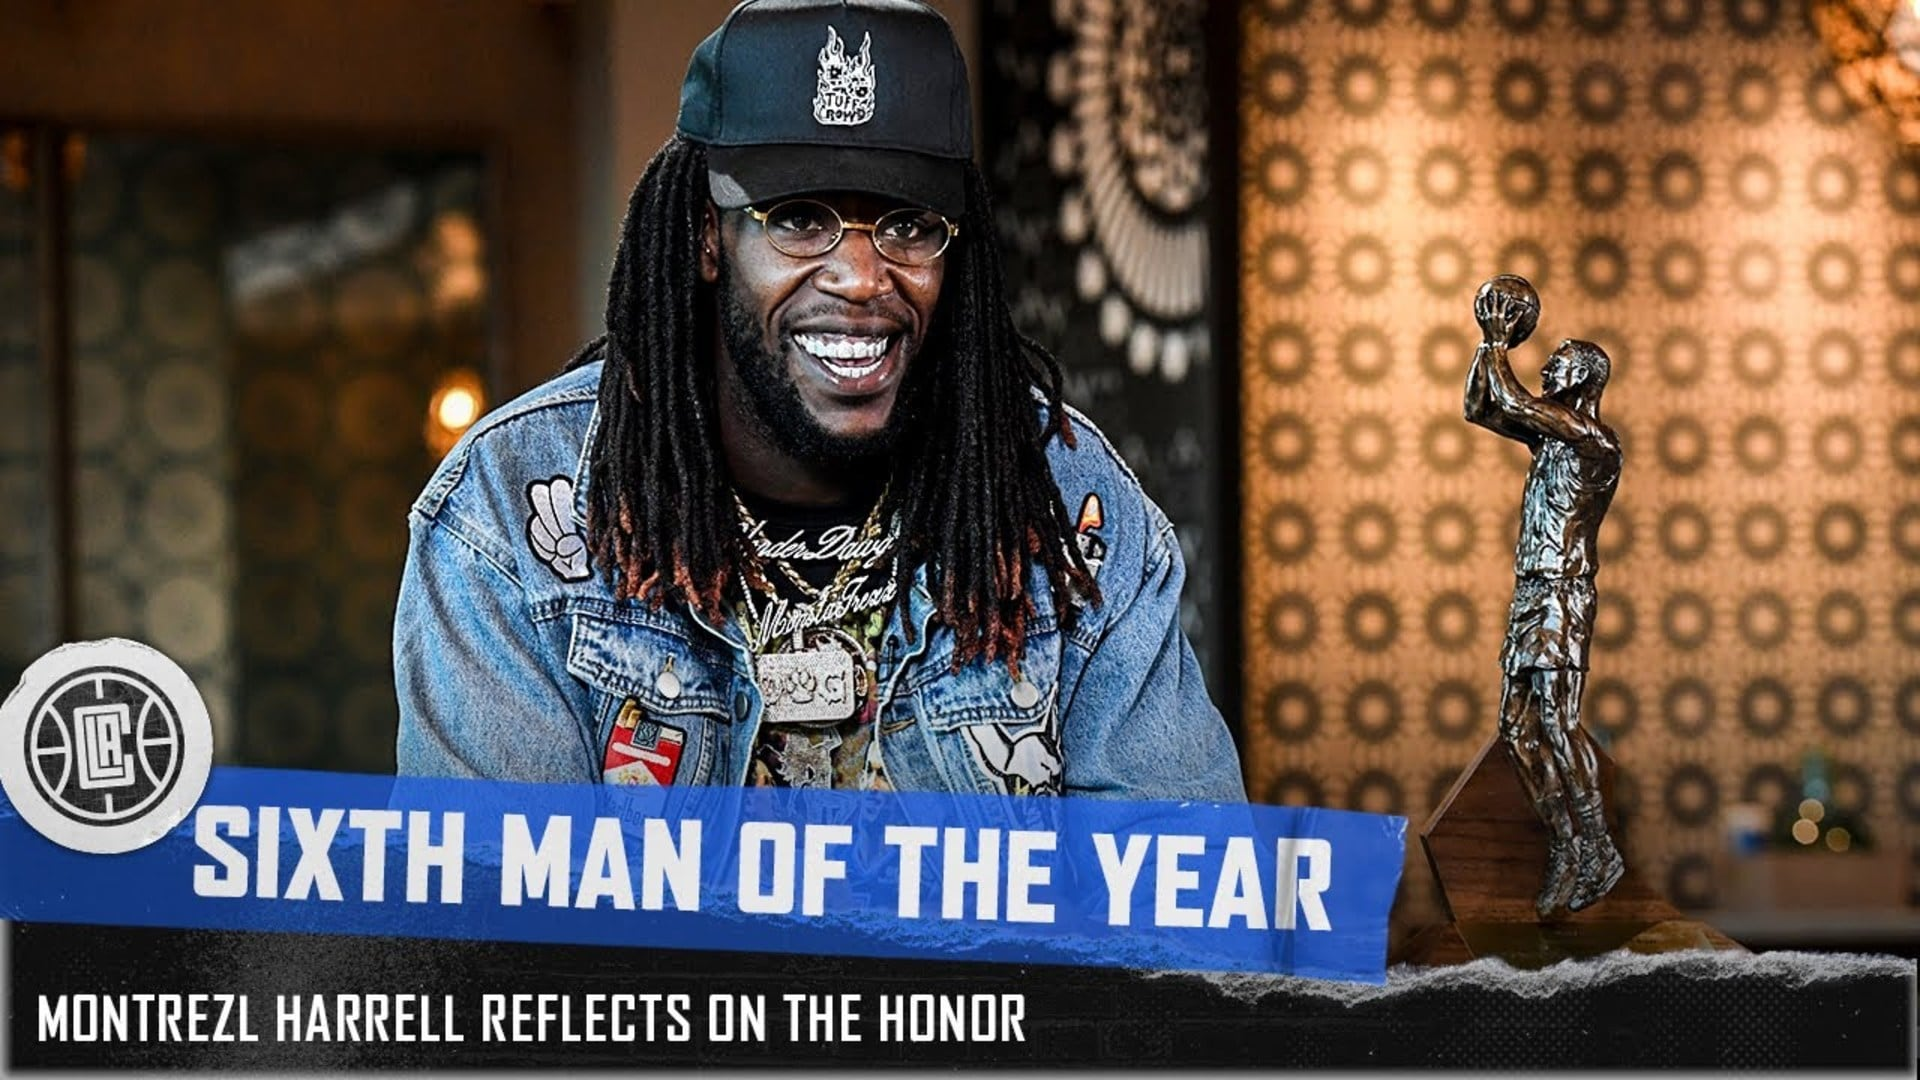 Montrezl Harrell Reflects on Winning Sixth Man of the Year